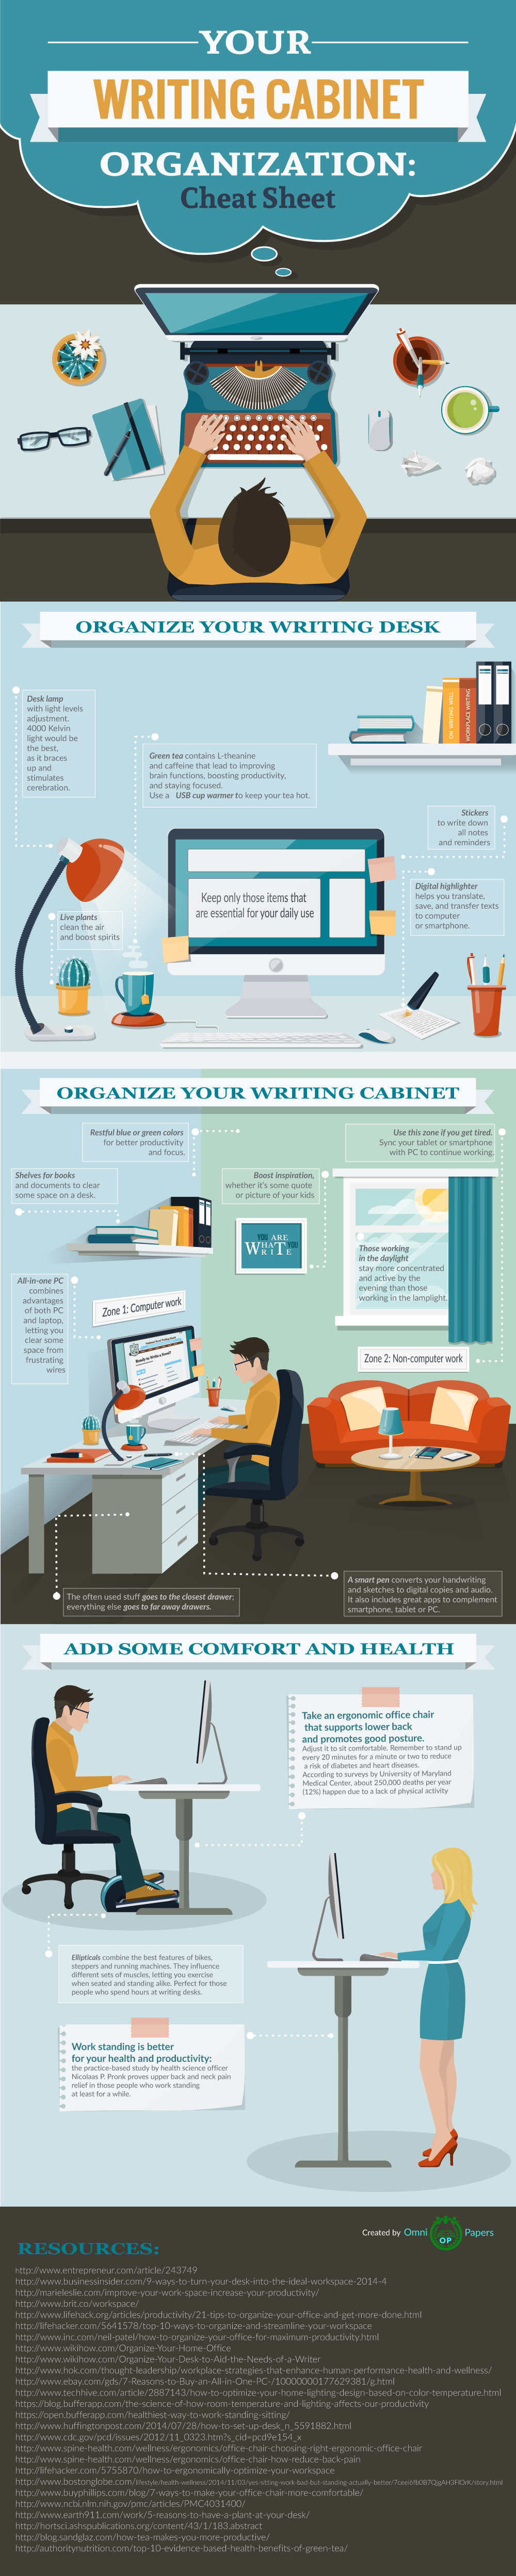 writing time  your writing cabinet organization